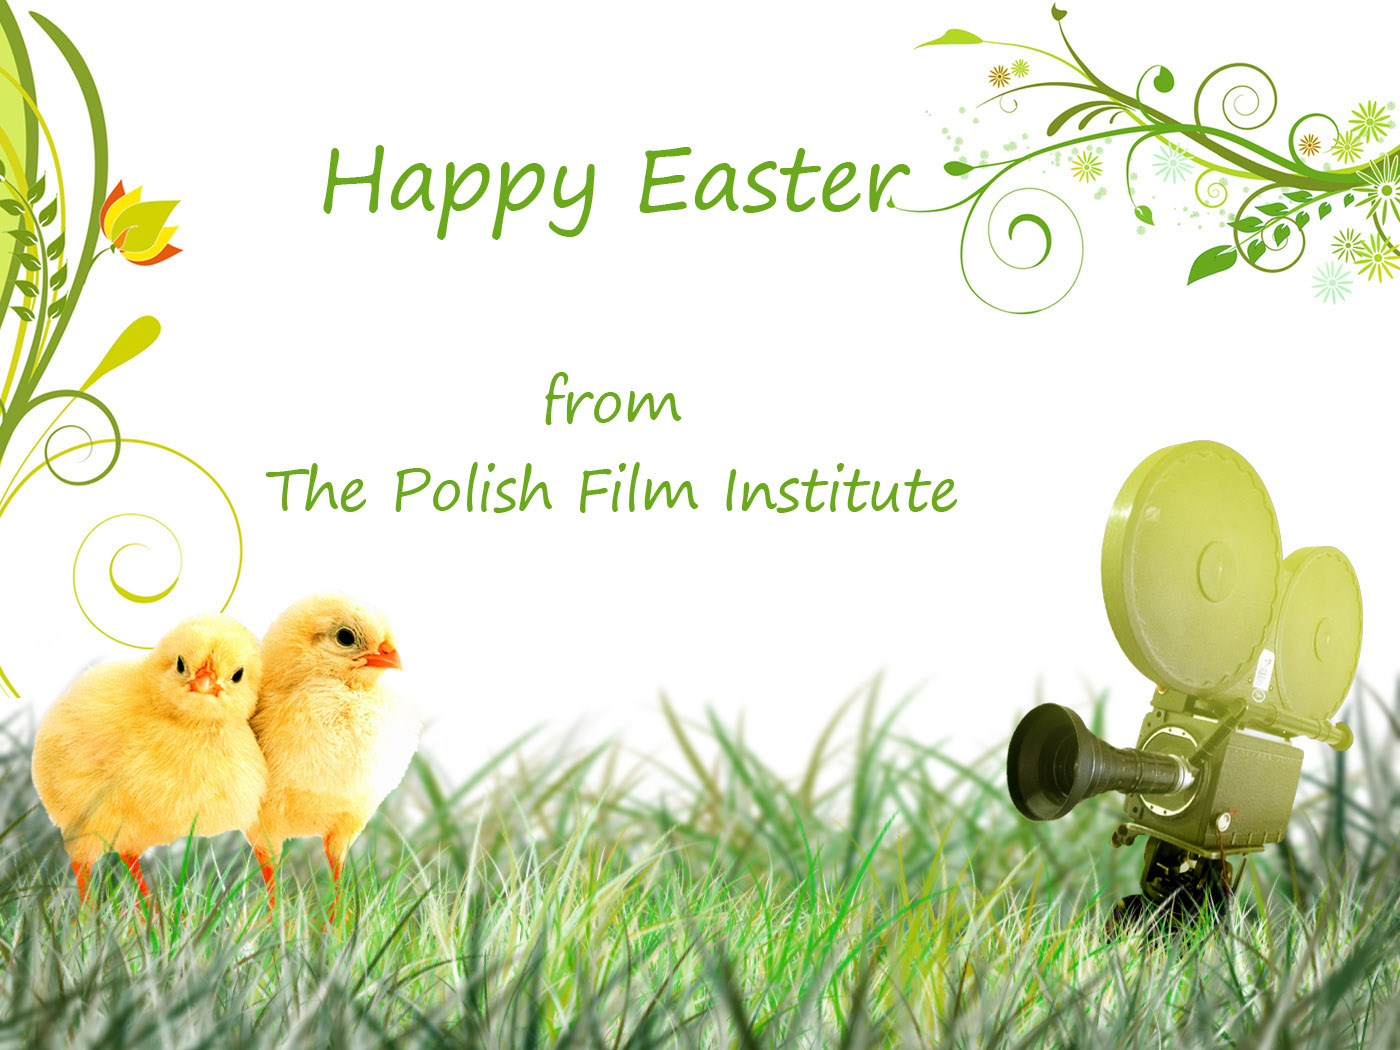 Happy Easter from the Polish Film Institute